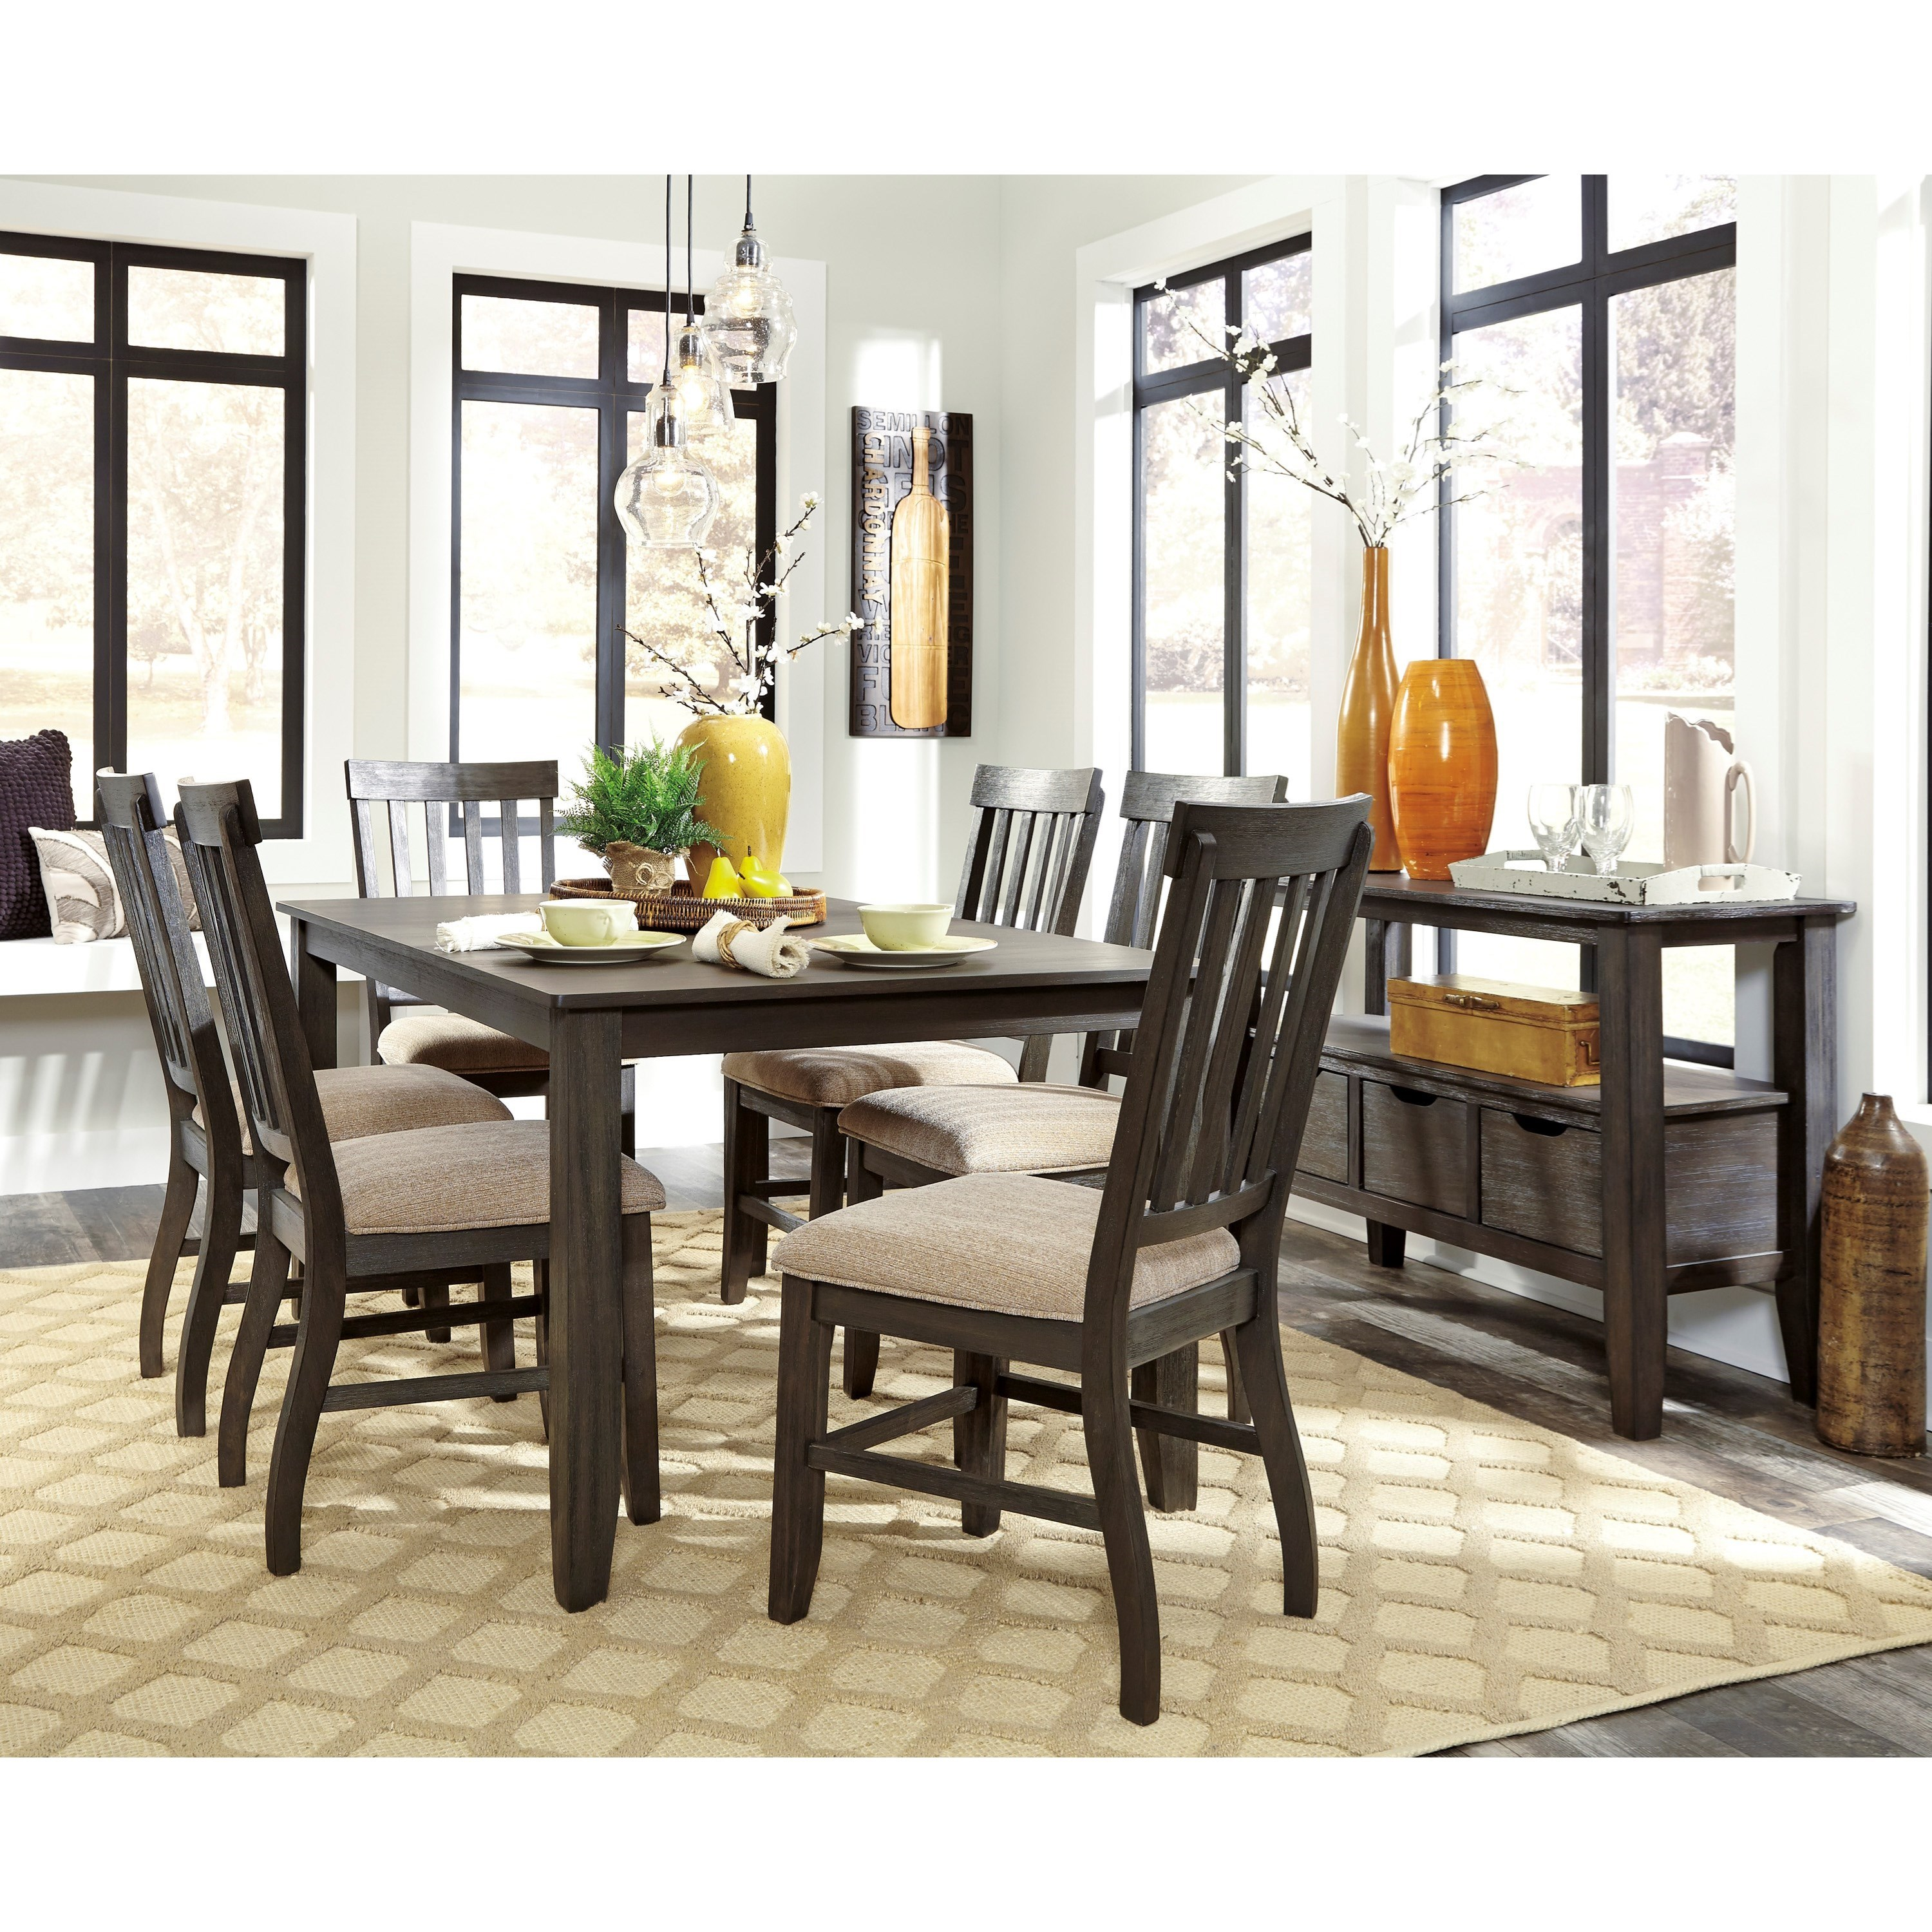 Signature Design By Ashley Dresbar Casual Dining Room Group Value City Furniture Casual